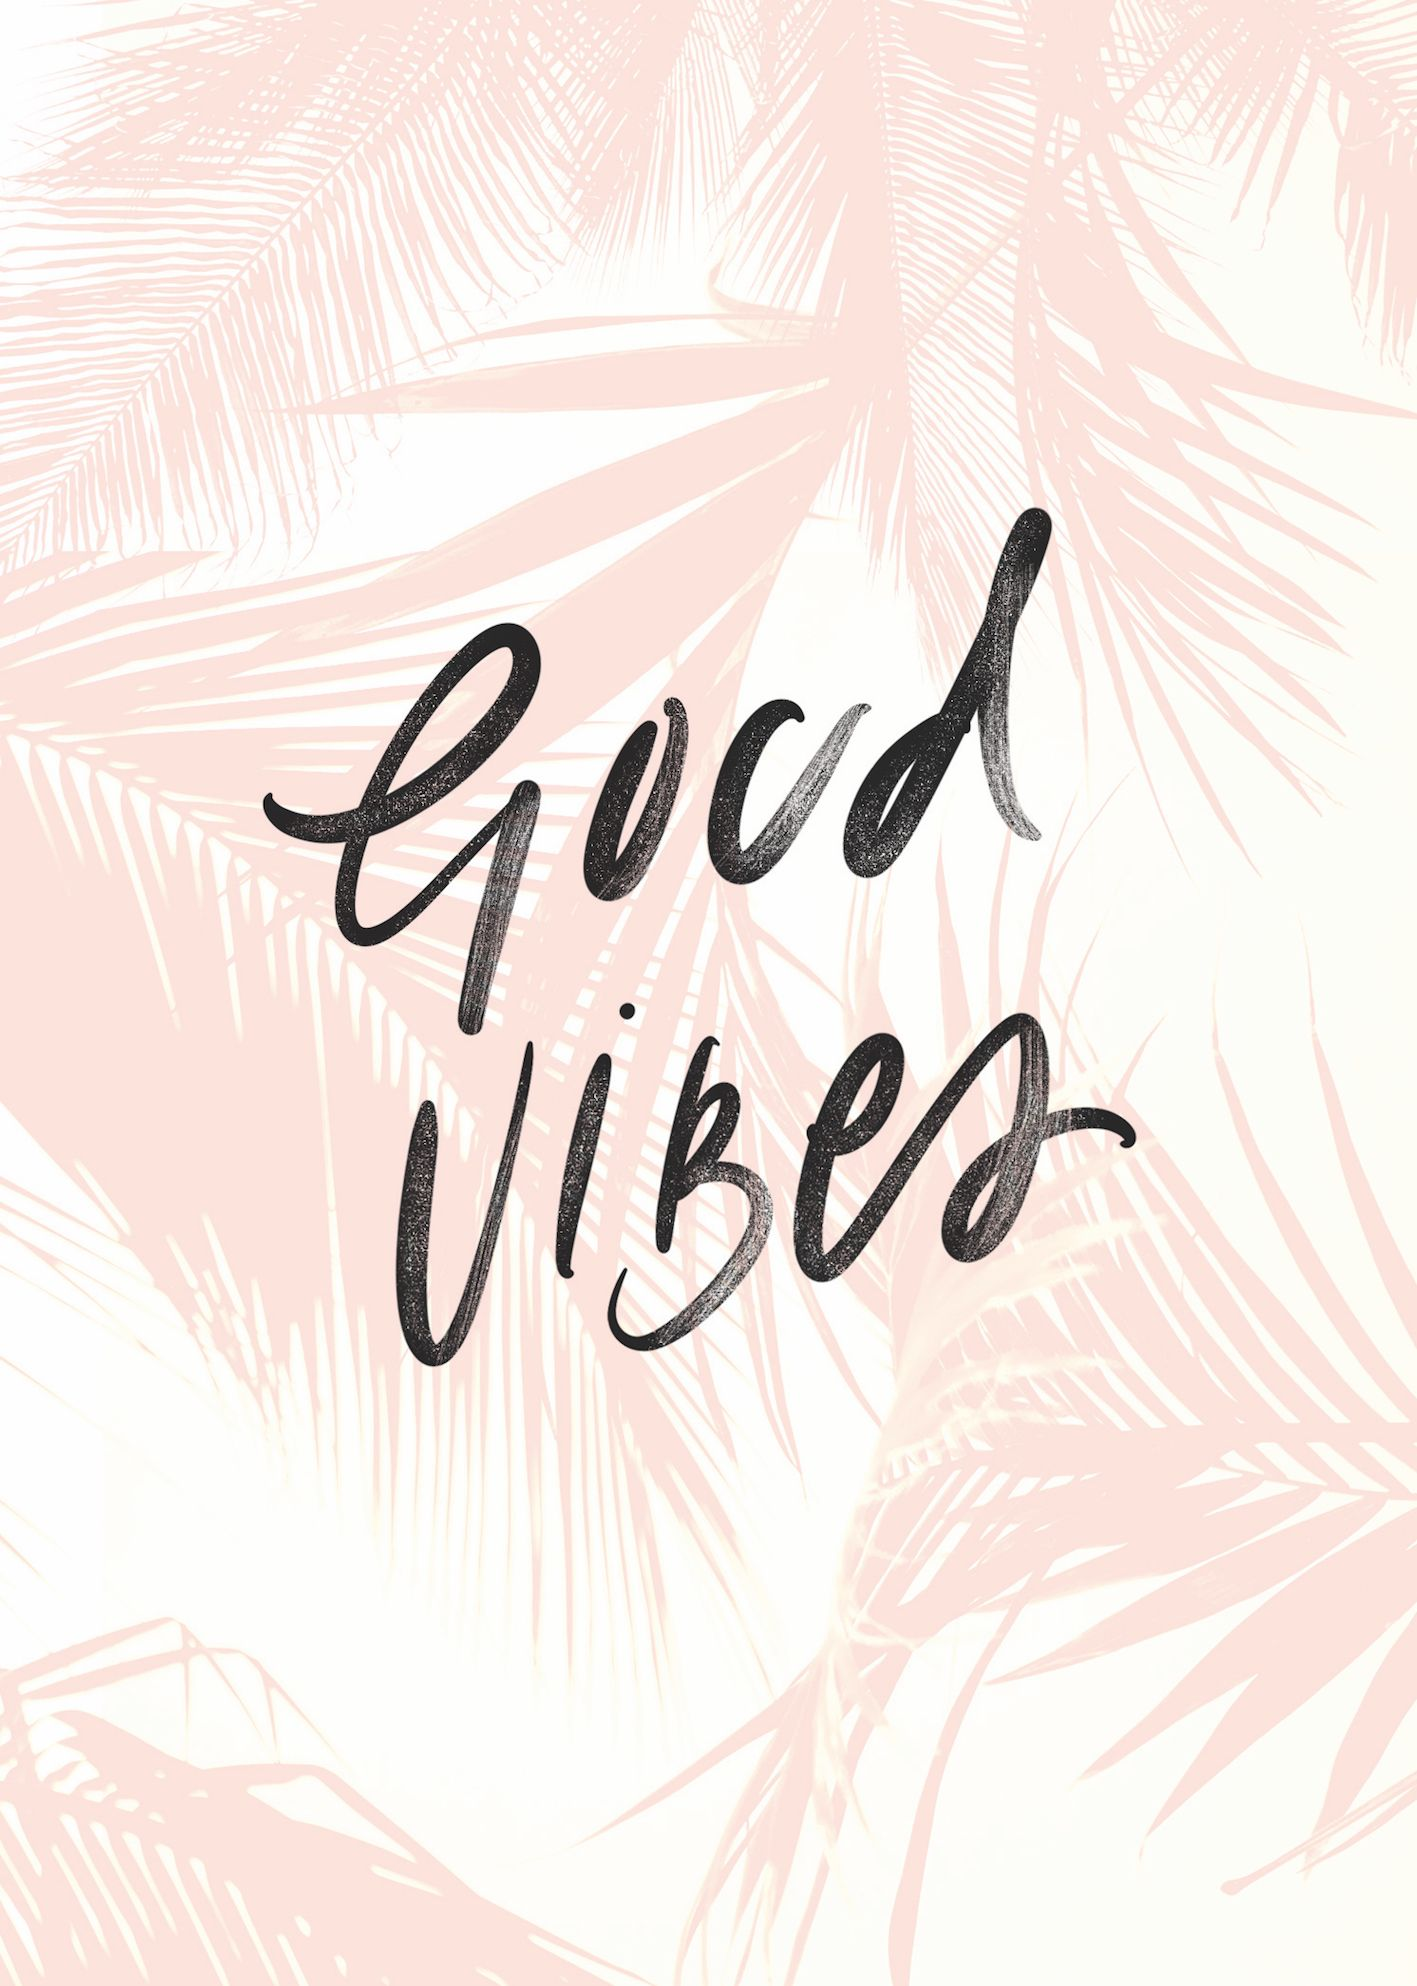 "Good Vibes Quotes Glamorous Good Vibes""  Albionfit  Words That Inspire Pinterest  Albion"